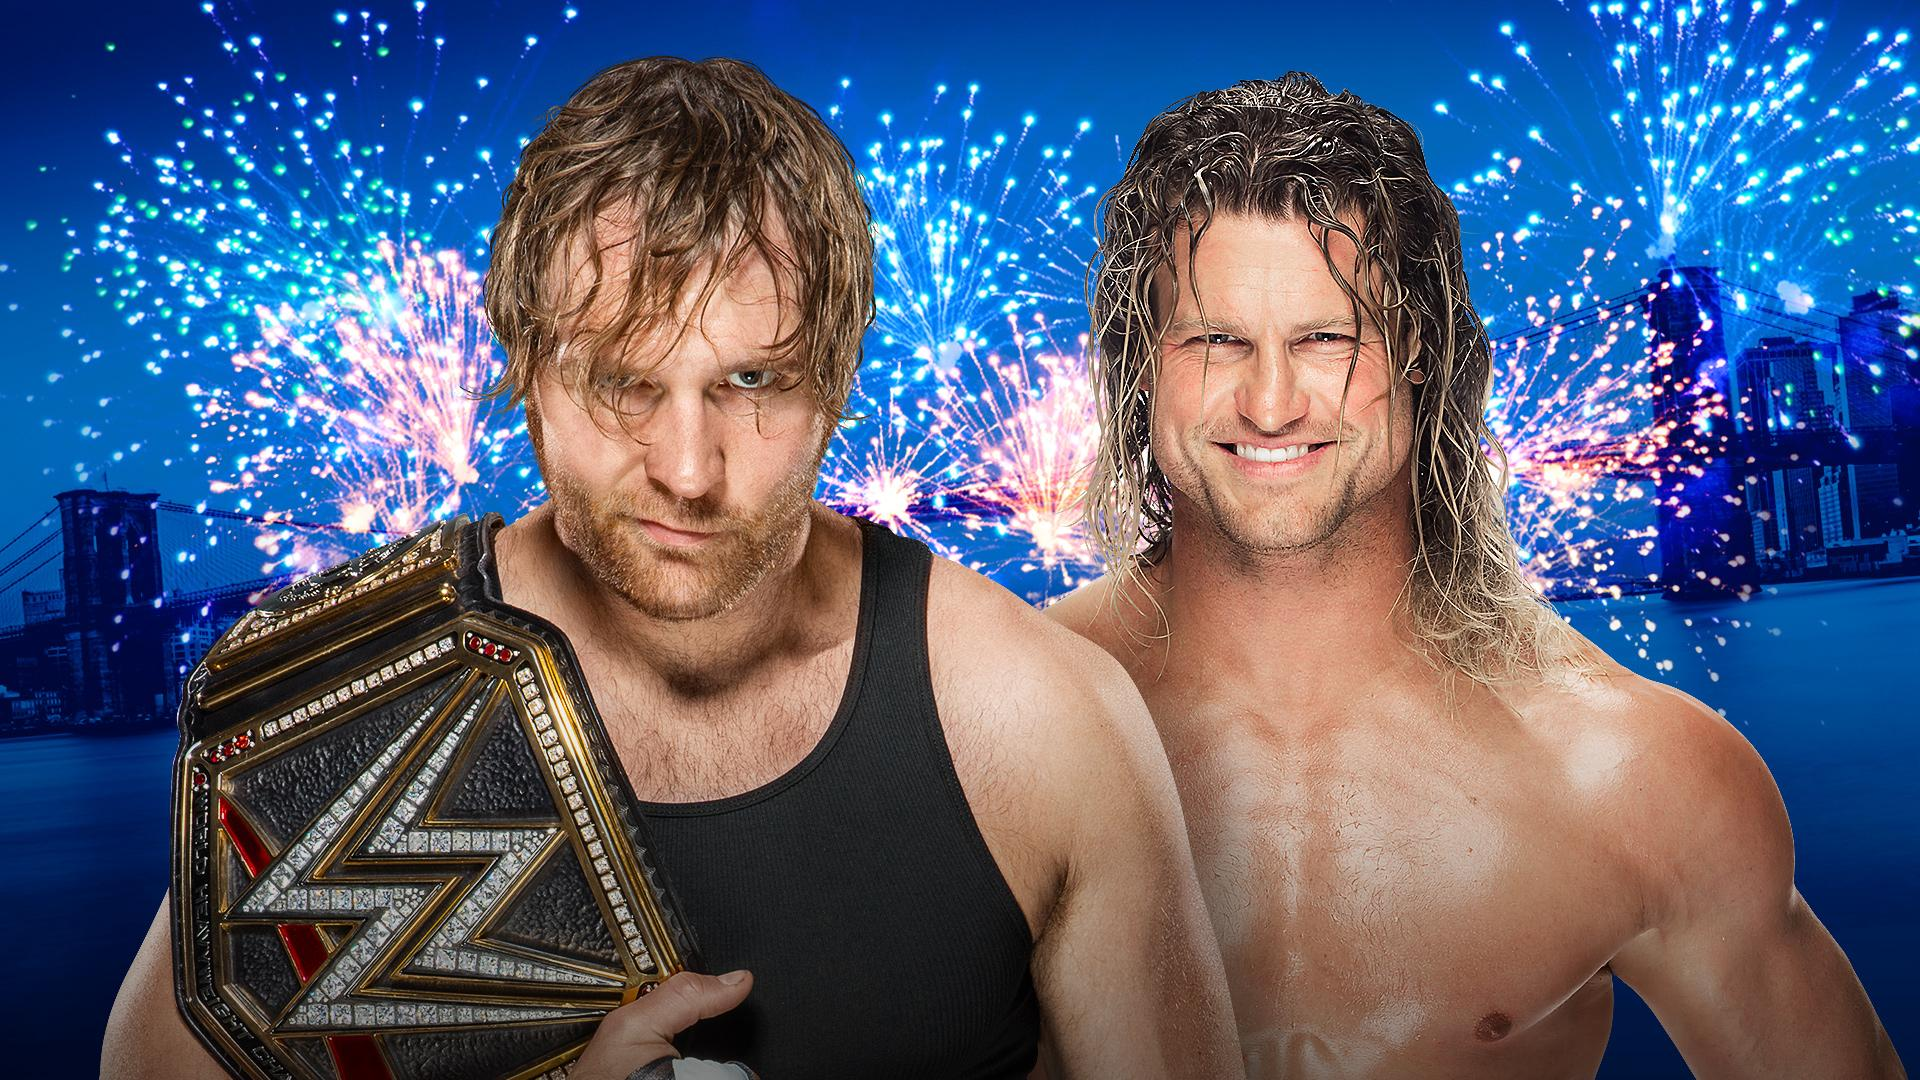 WWE World Champion Dean Ambrose vs Dolph Ziggler